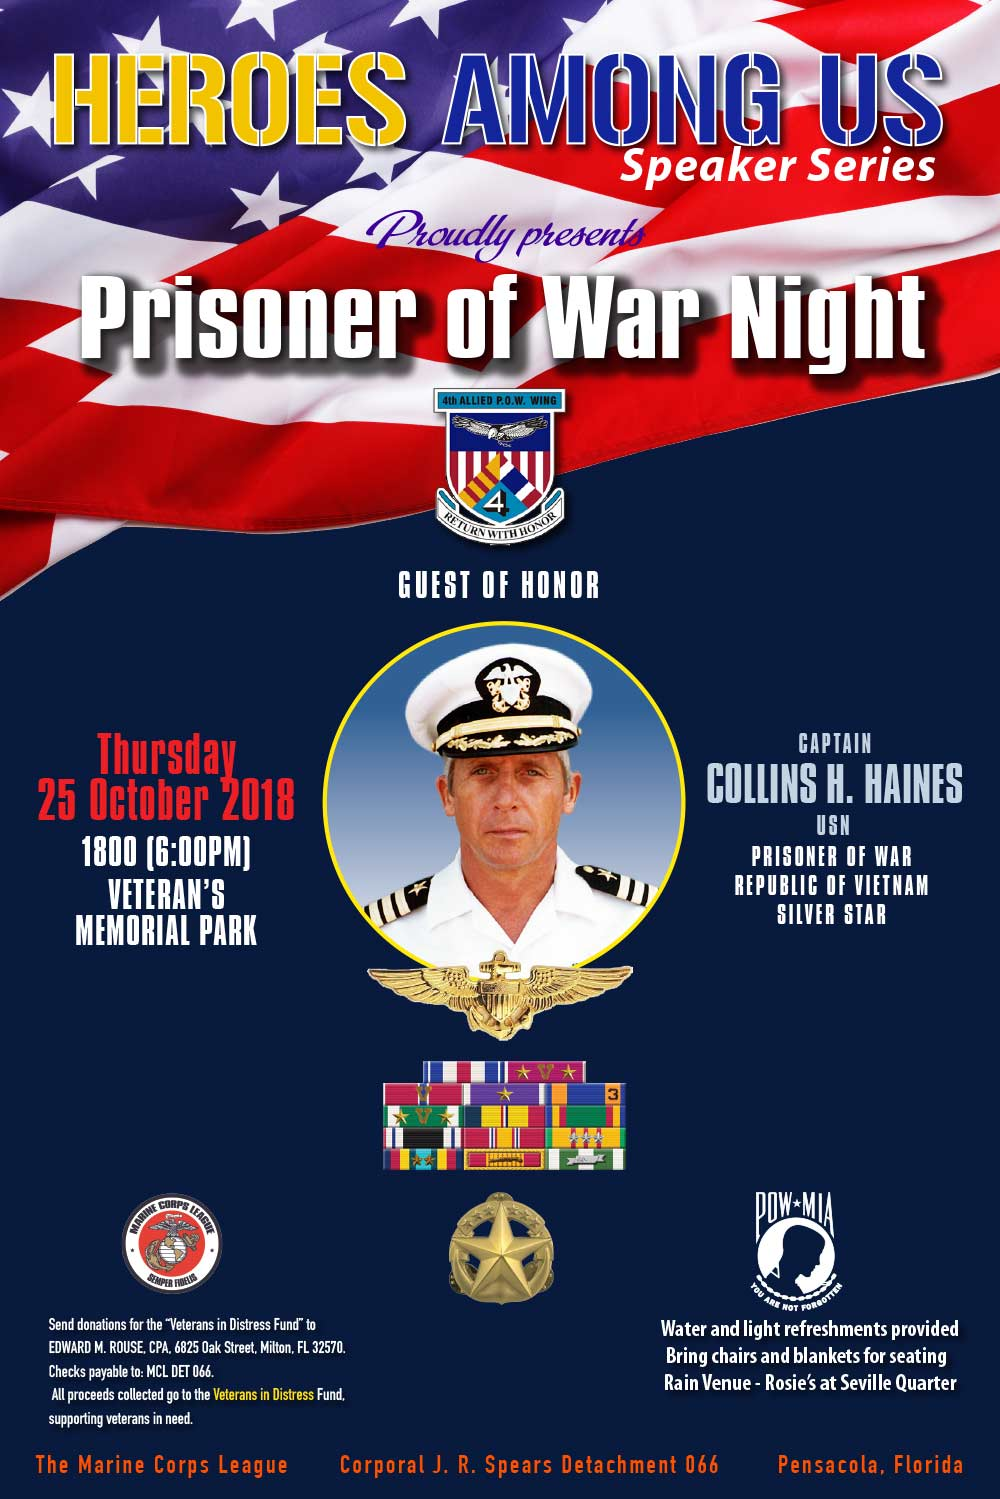 Prisoner of War Night